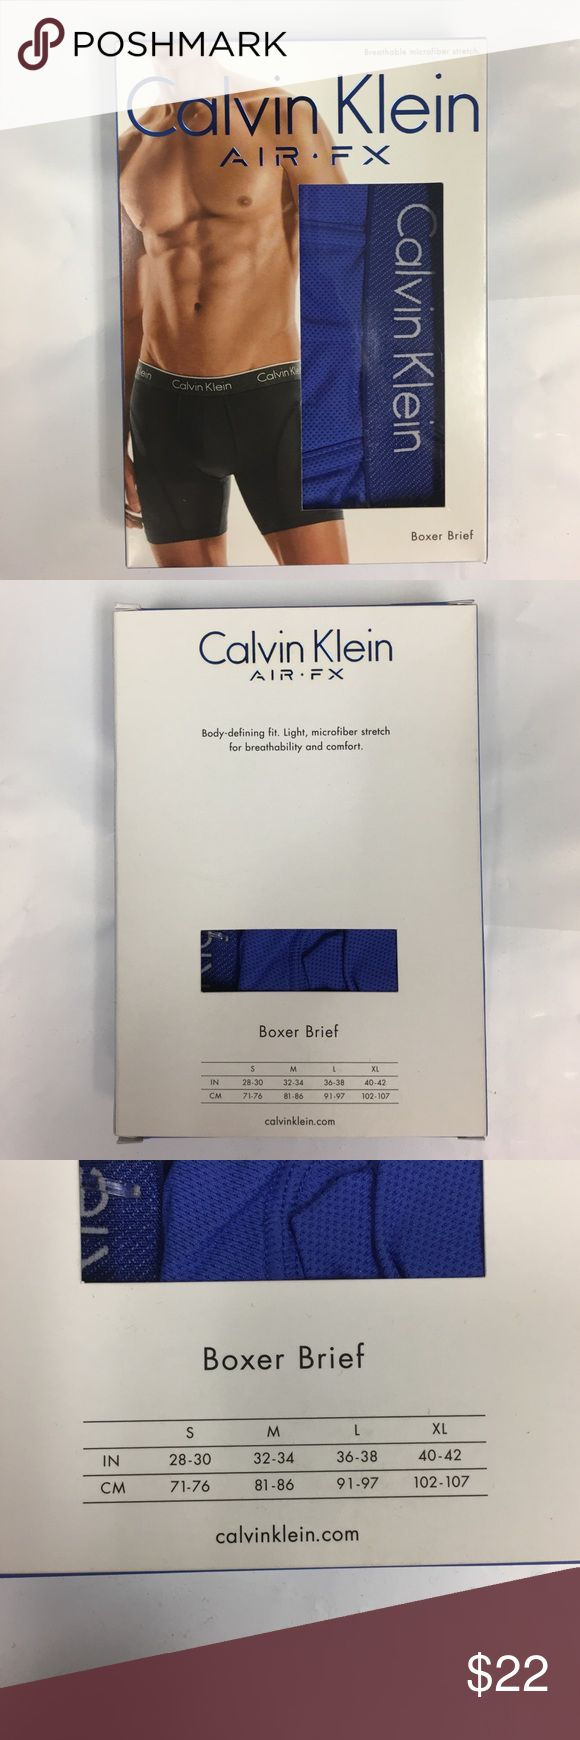 Calvin Klein Air FX Boxer Brief x 1 NWT Brand new in box. 100% cotton. Each box includes 1 pair. No trades. No offers. Please do not ask. Thank you for understanding. Calvin Klein Underwear & Socks Boxer Briefs